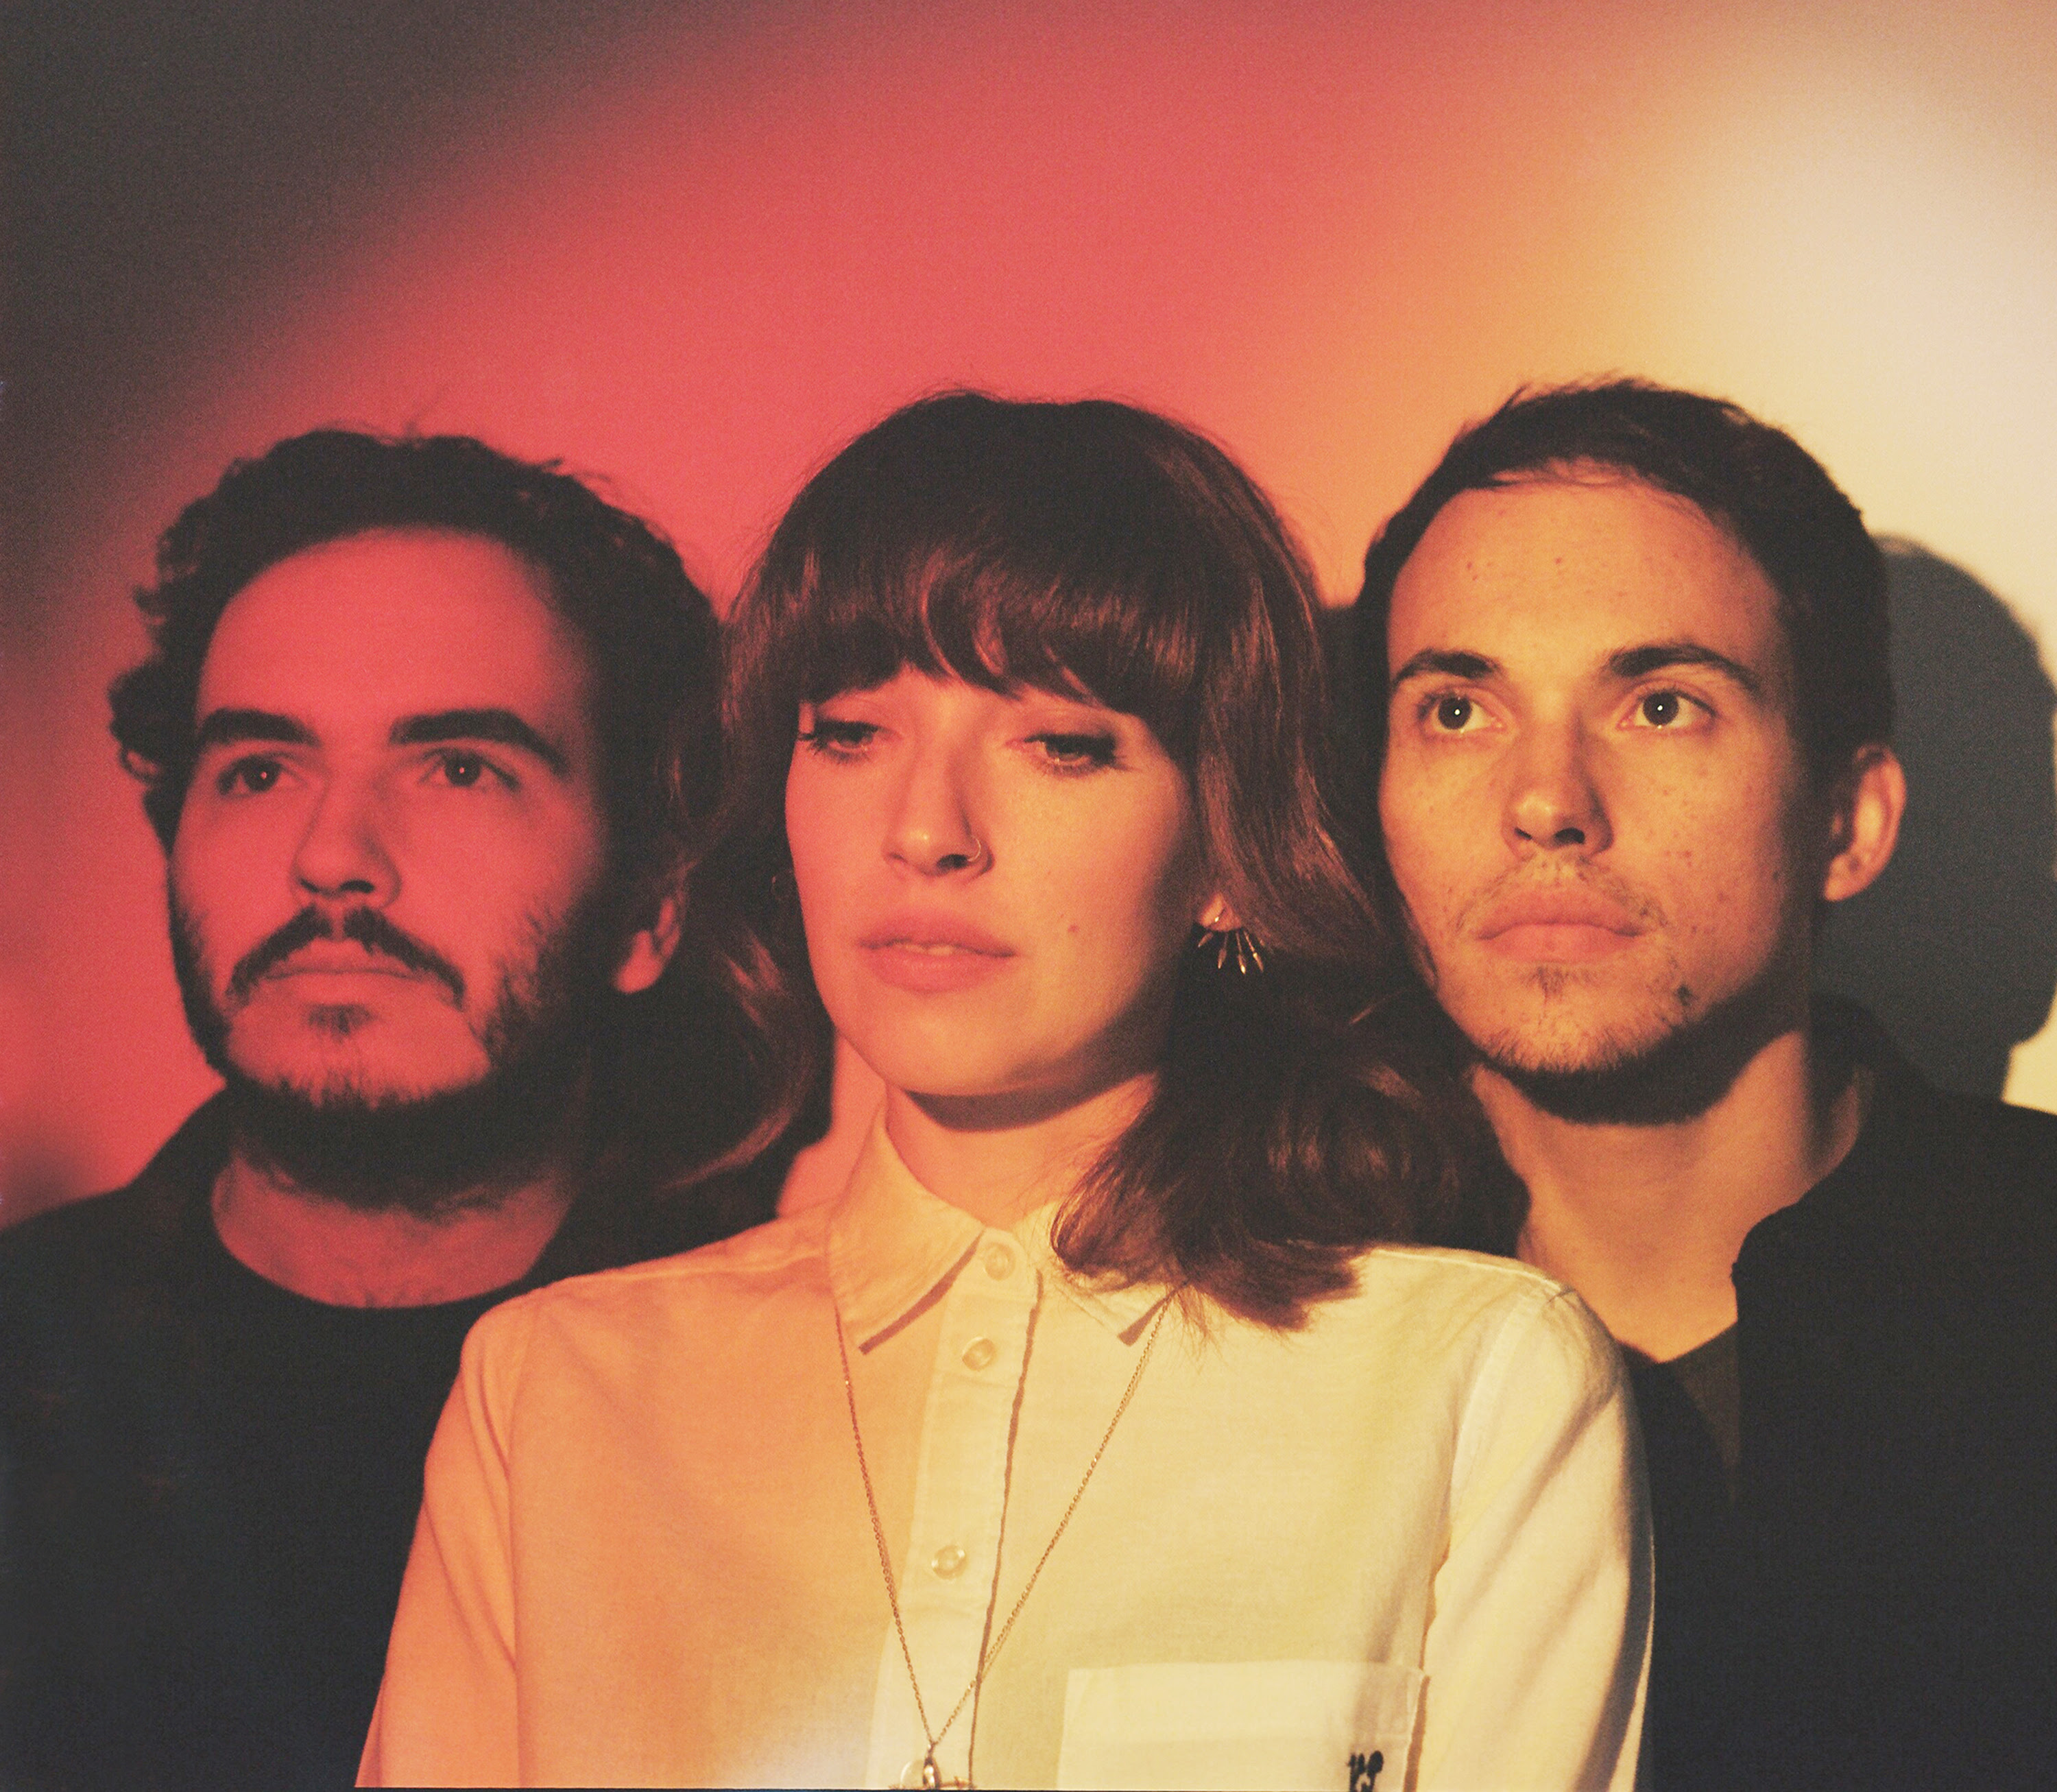 Daughter Announce North American Tour Dates, starting on November 1st in New York City.